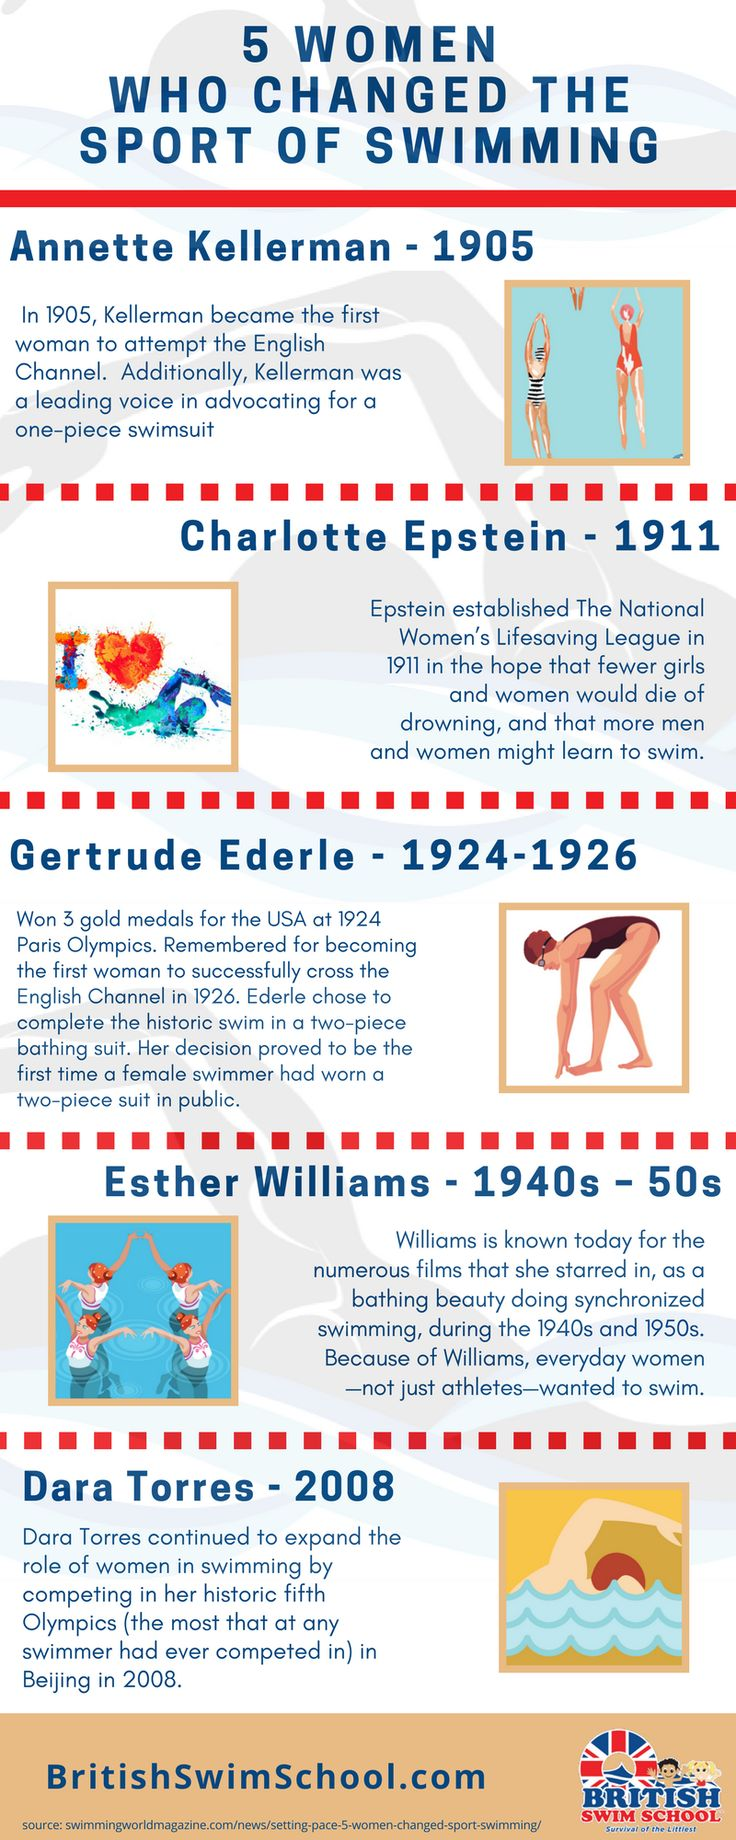 [INFOGRAPHIC] 5 Women Who Changed the #Sport of #Swimming. Ready to dive into learning #howto #swim? We have advanced, beginners, intermediate and we even have a #swim team. Find out more about our programs here: http://britishswimschool.com/our-programs/ Source: @SwimmingWorld  #womenhistory